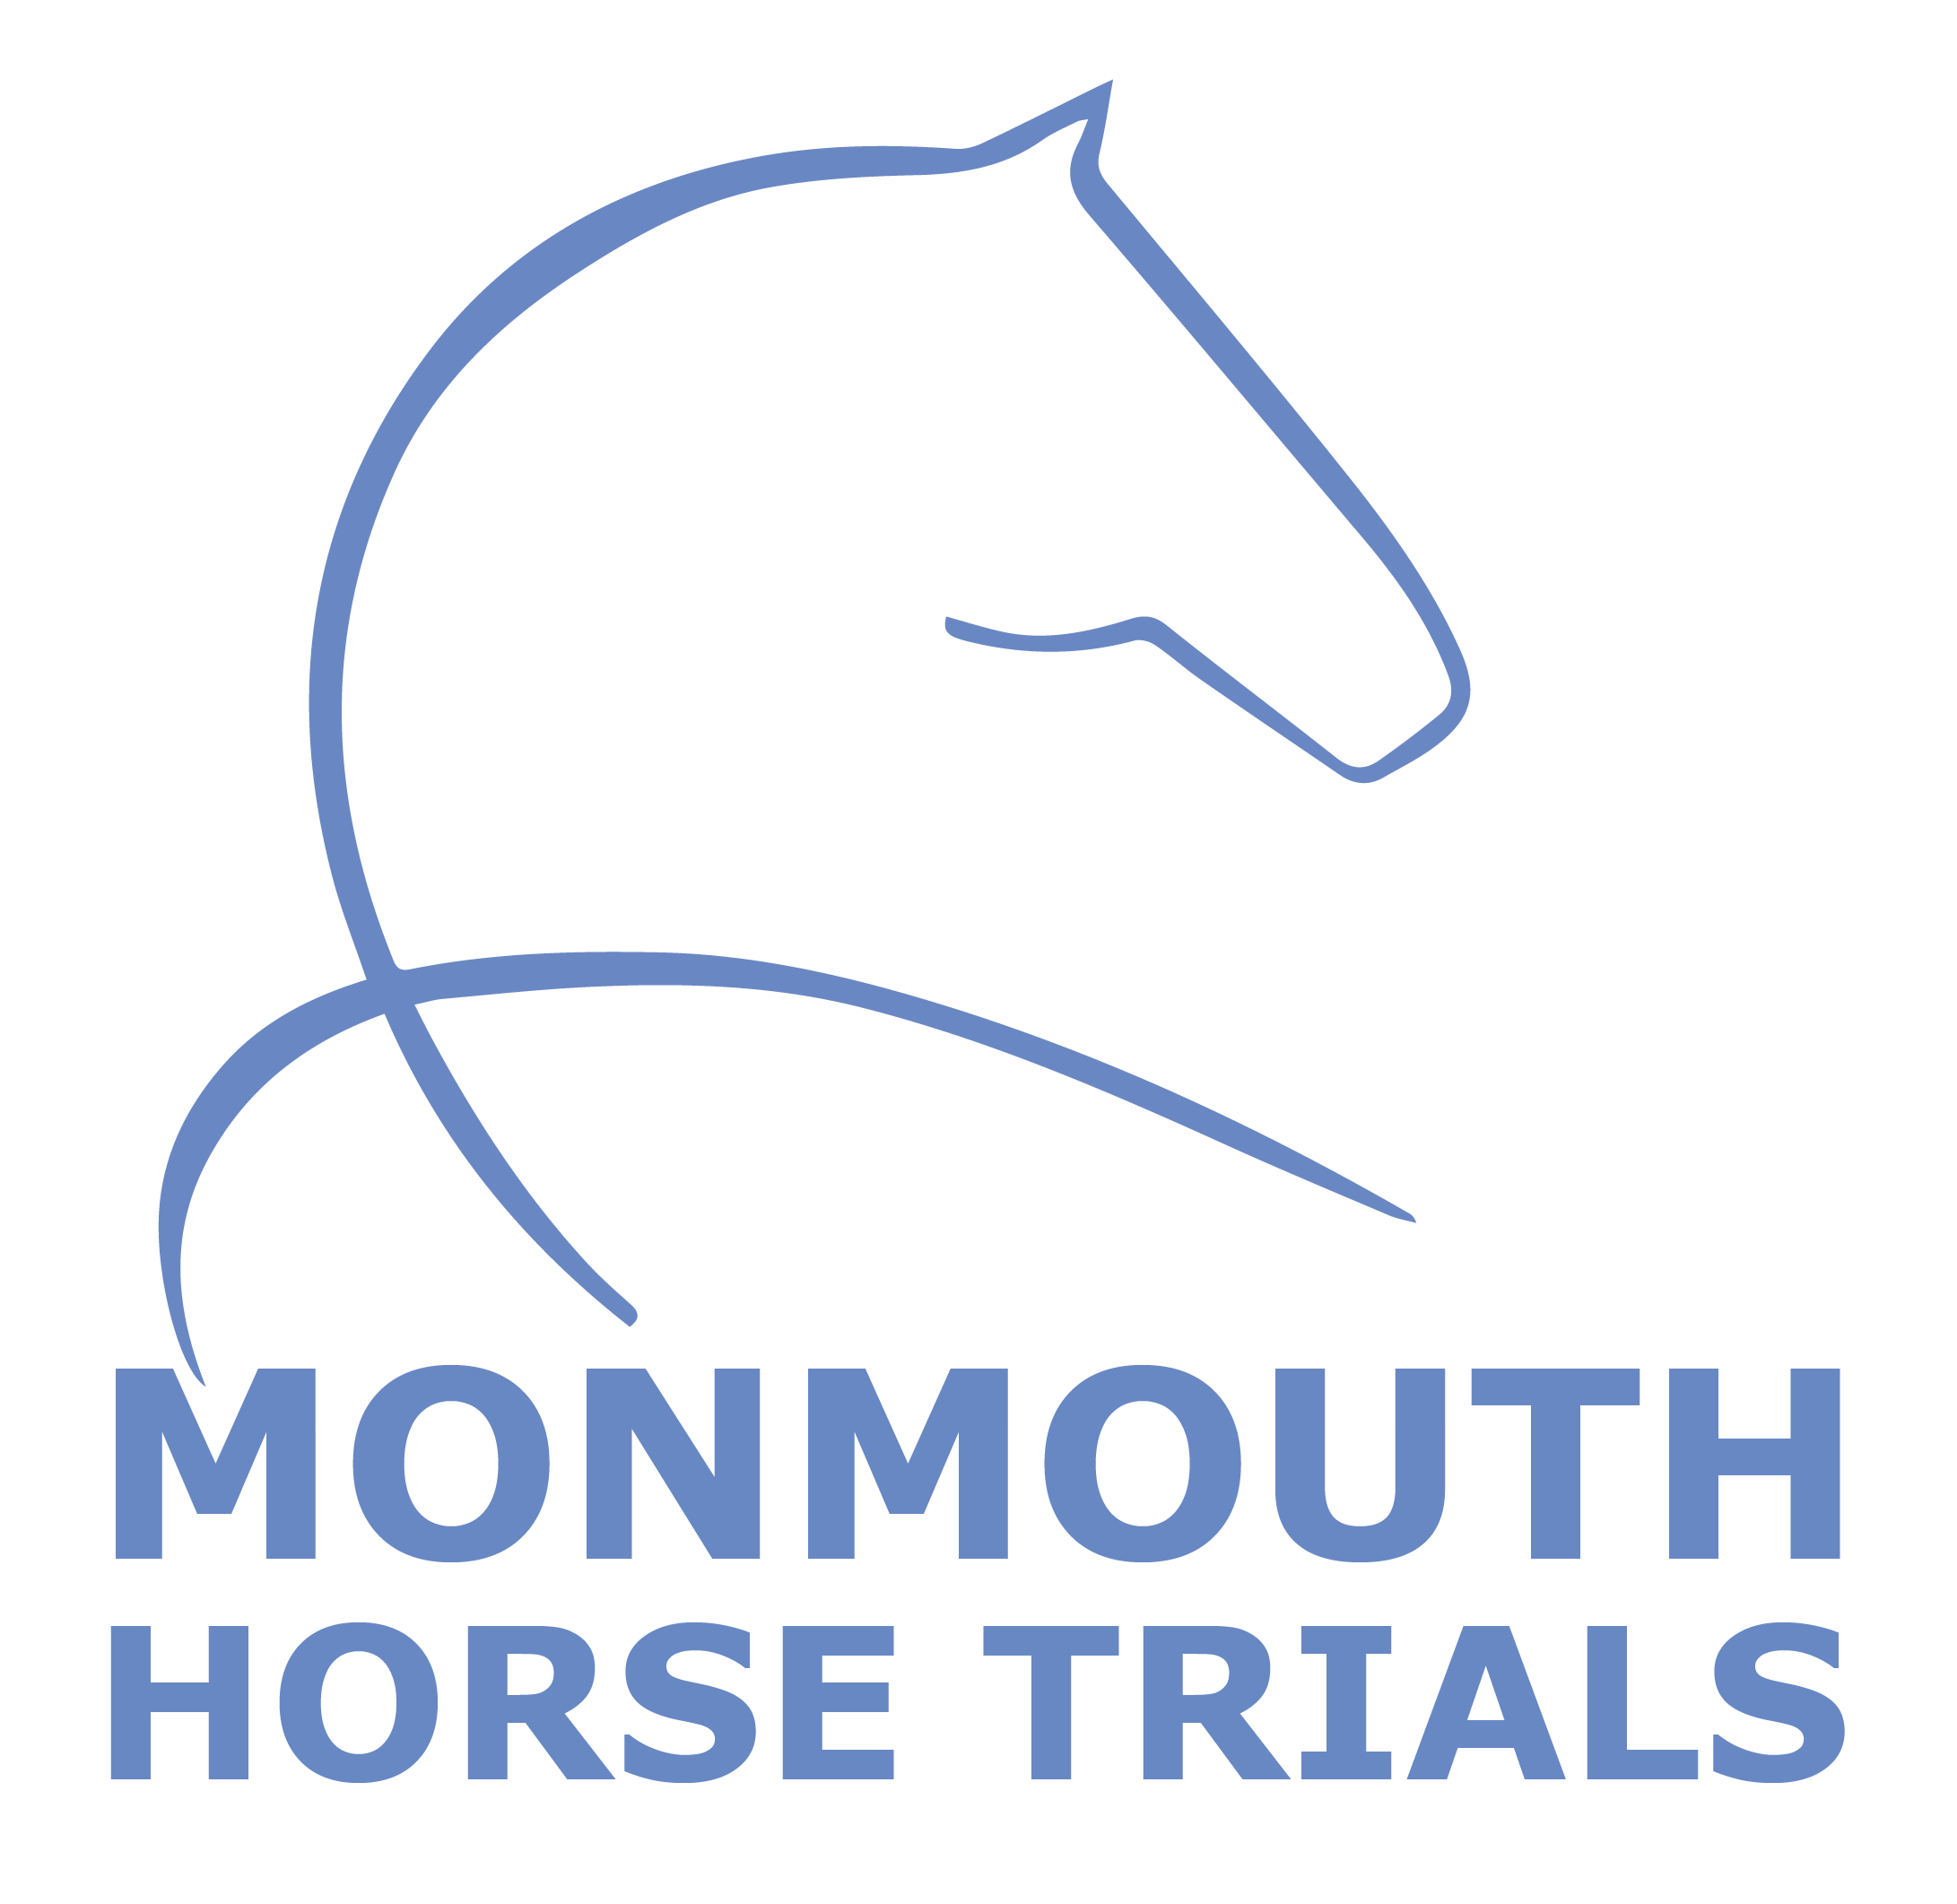 Monmouth Horse Trials 15th & 16th September 2017